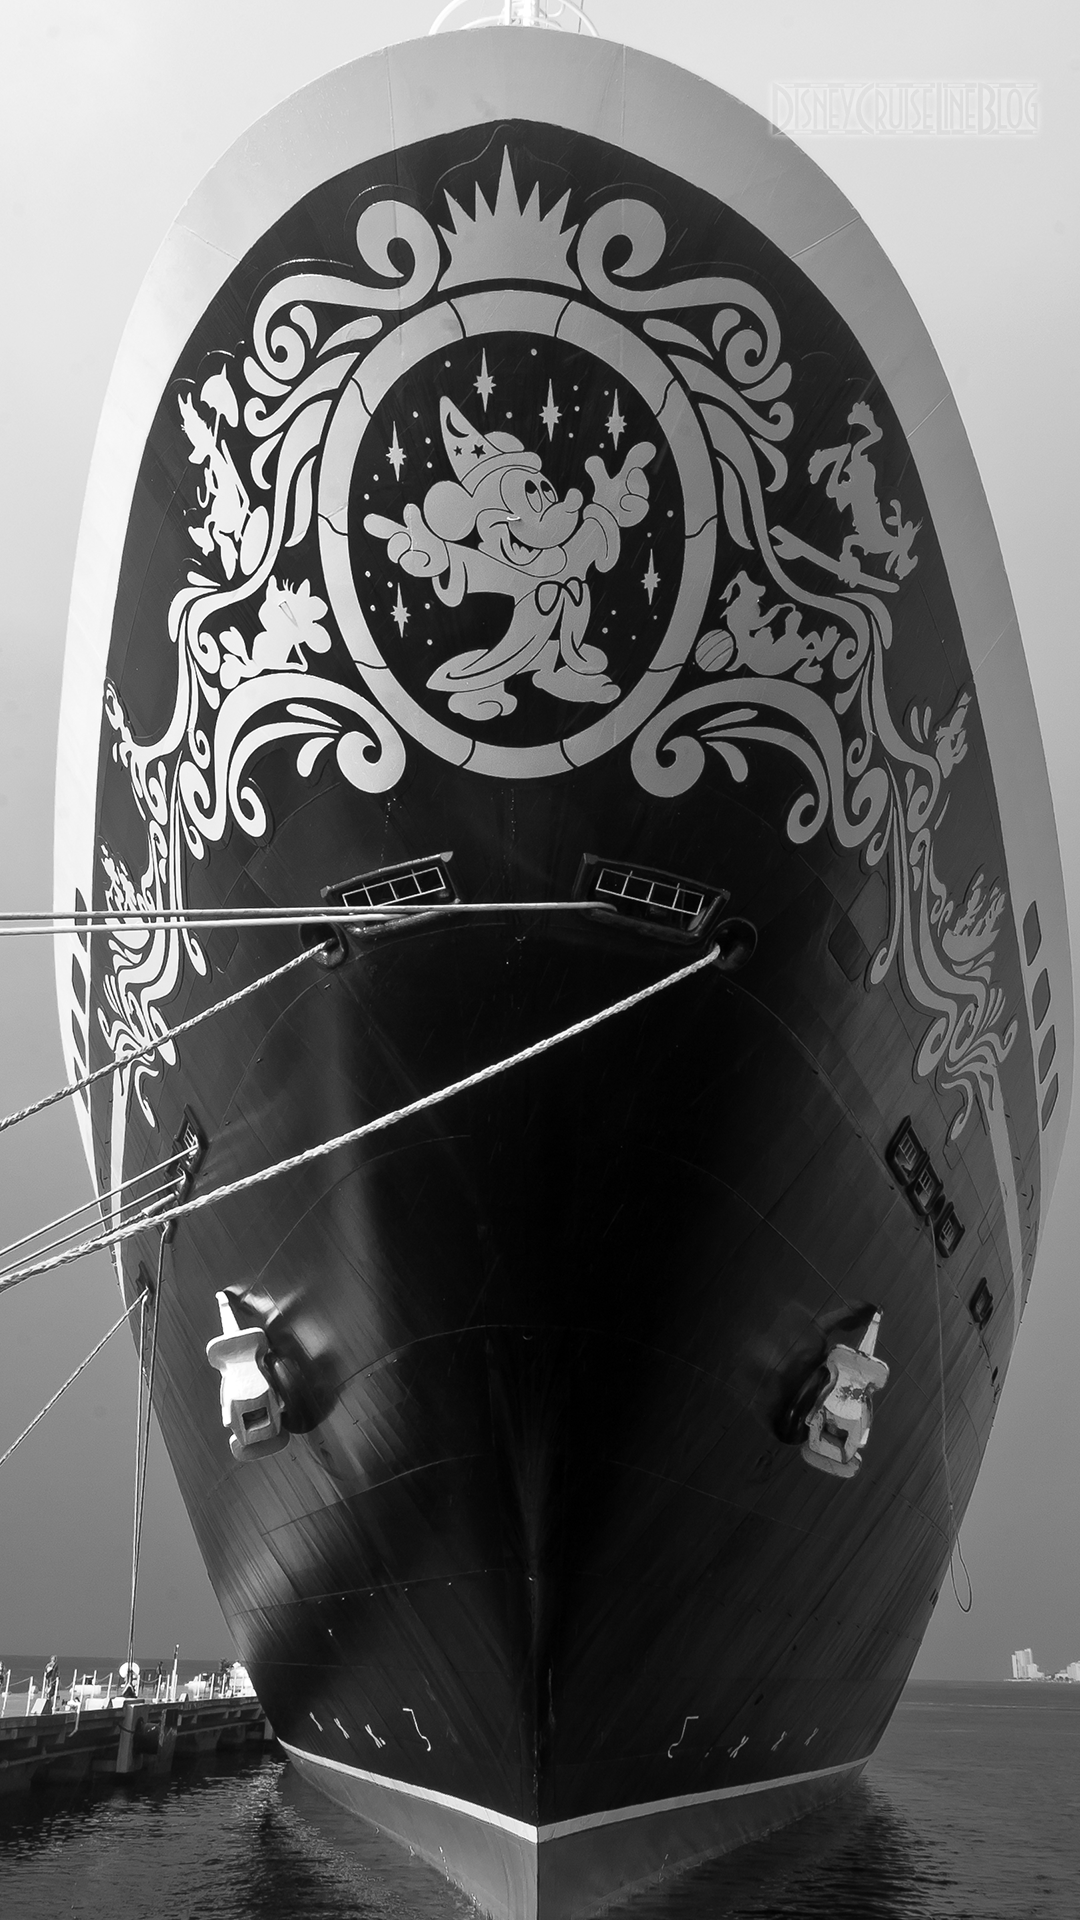 Disney Magic Bow B&W iPhone 6 Plus Wallpaper